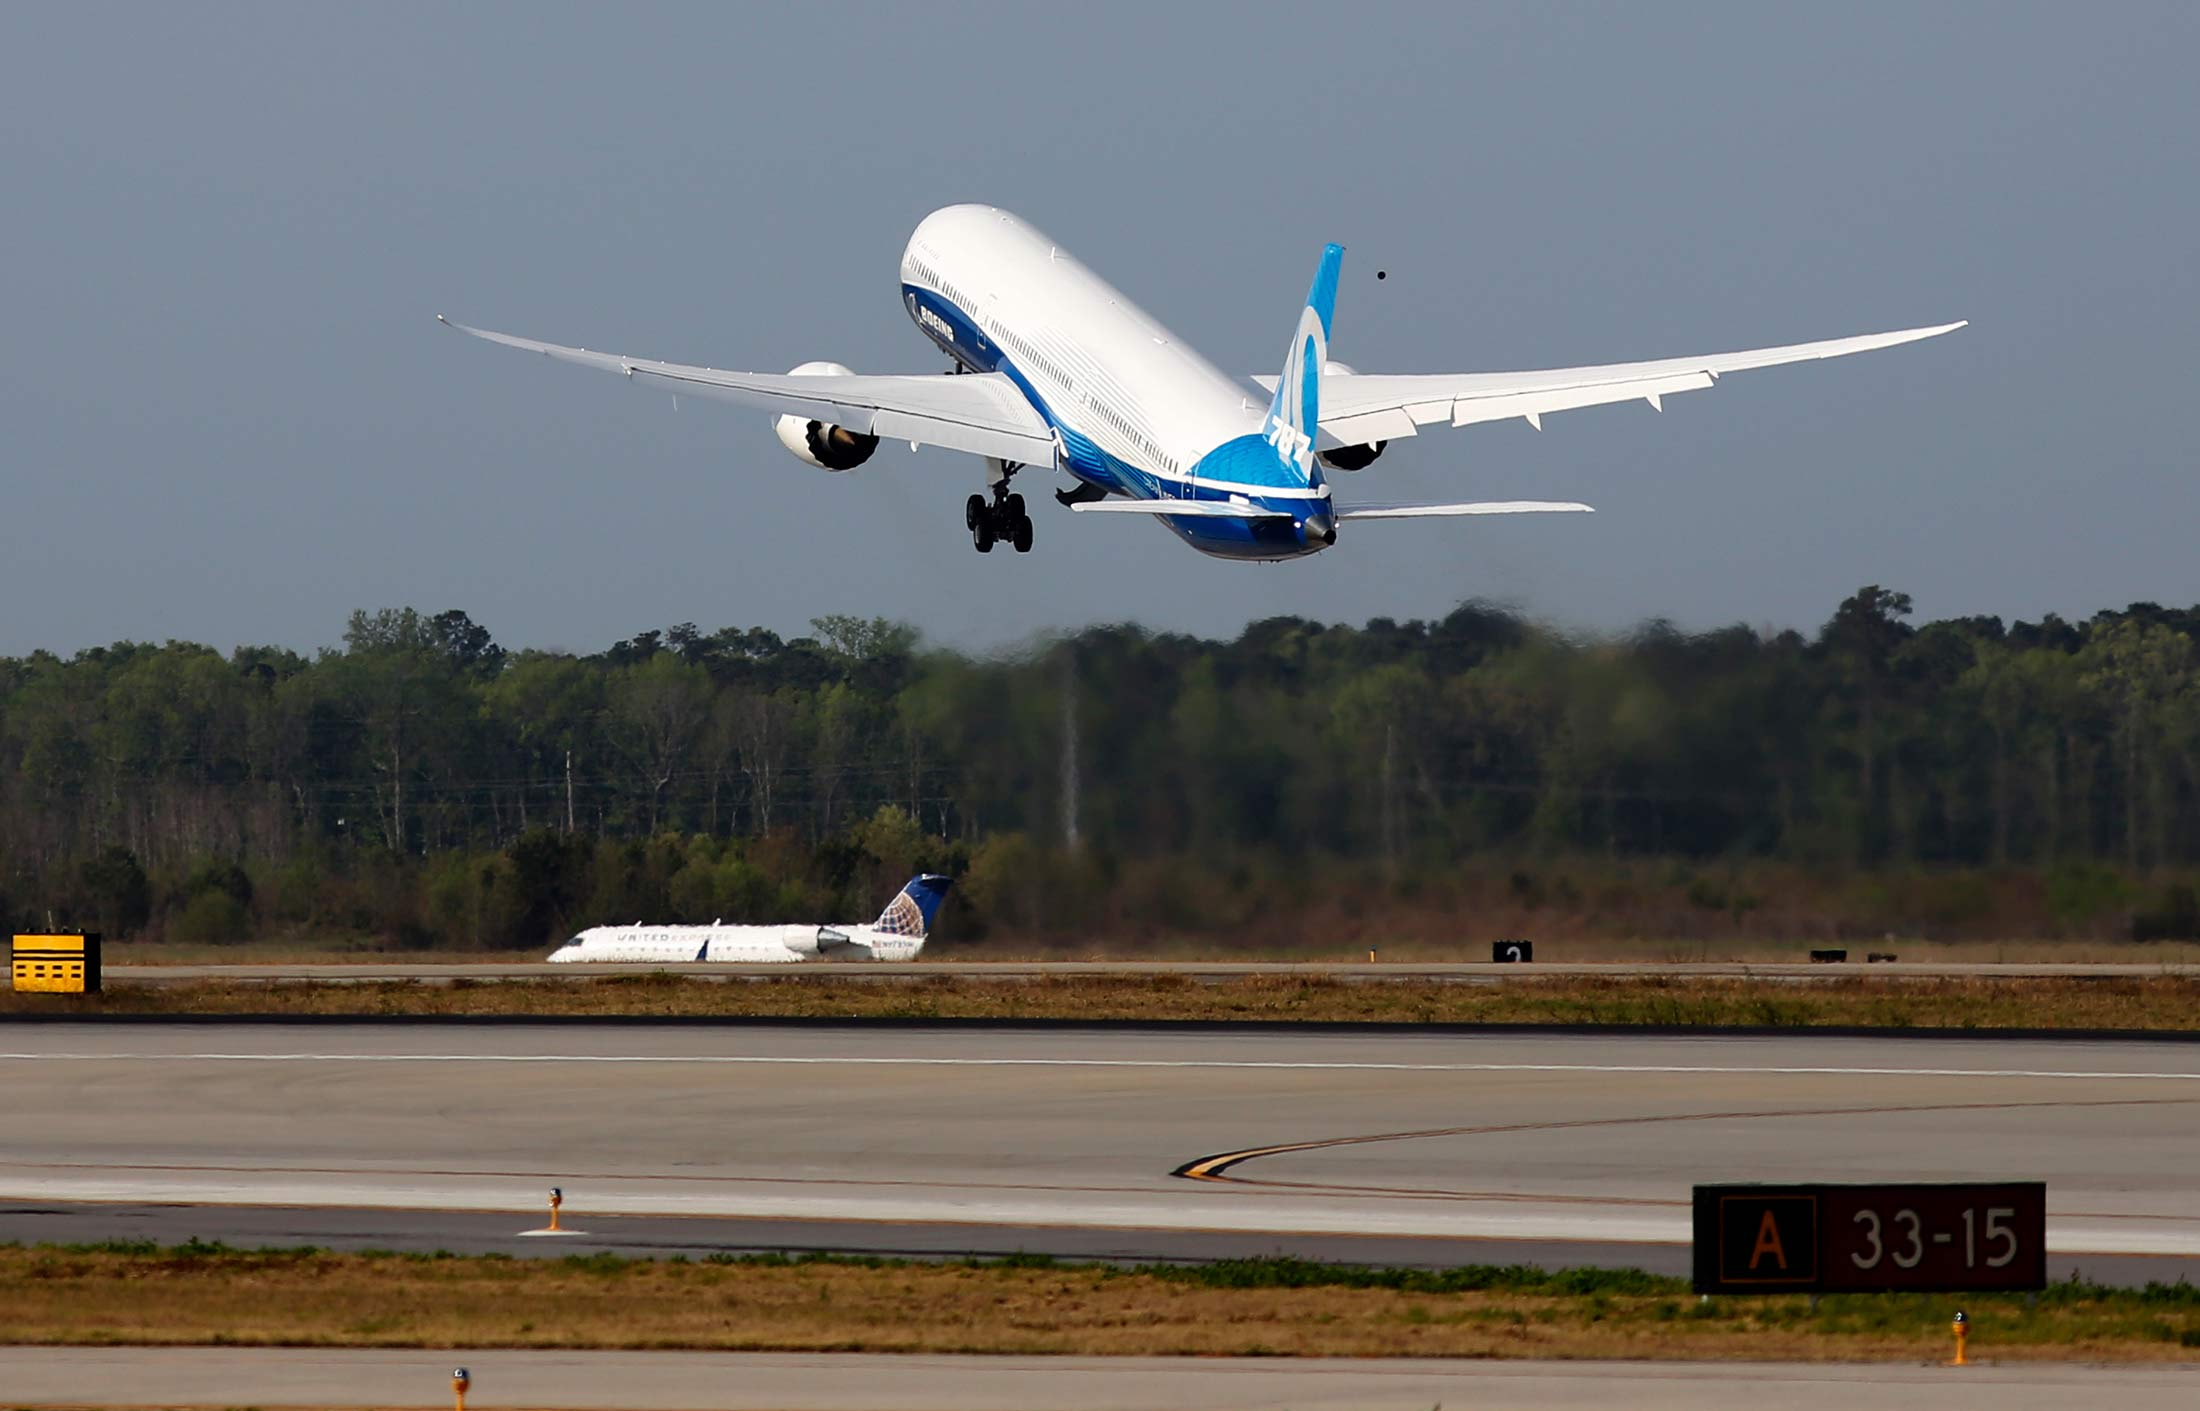 Biggest 787 dreamliner takes flight in lift for boeing cash plan biggest 787 dreamliner takes flight in lift for boeing cash plan bloomberg sciox Images